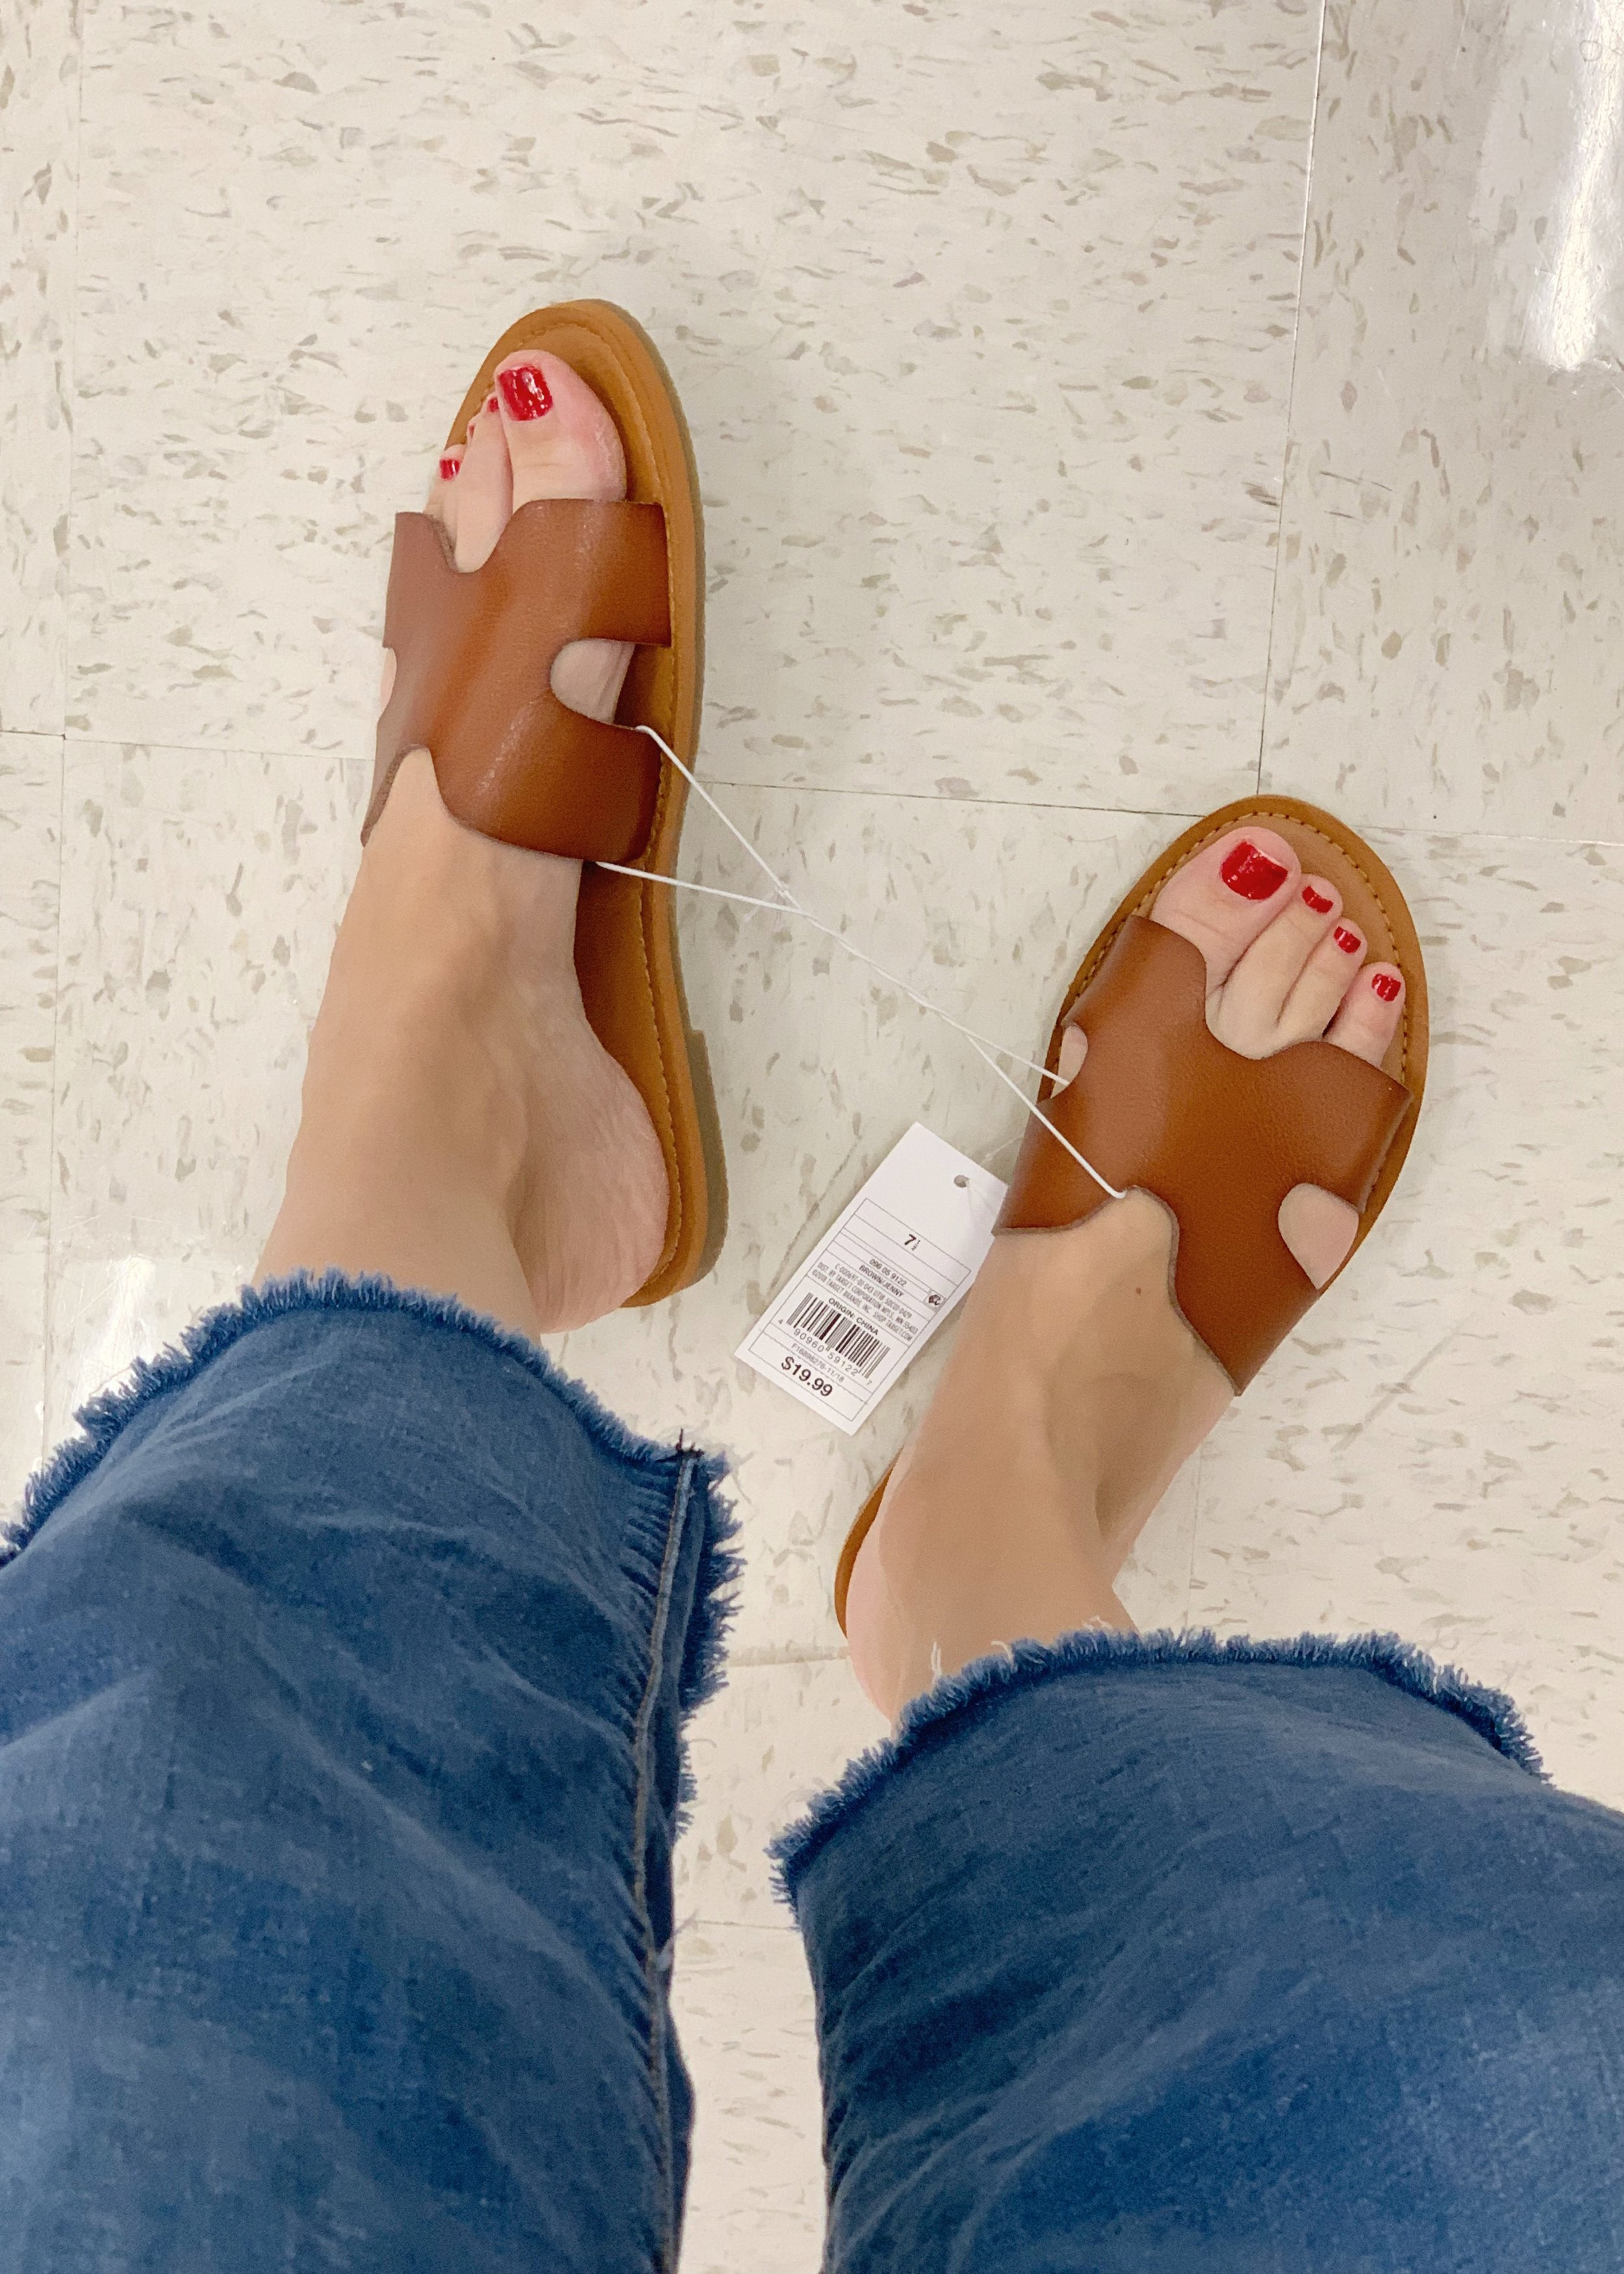 These sandals are a dupe of the Hermes slide and also the Steve Madden greek sandal that was so popular last year and has carried on into this spring too. They are only $19.99 and comes in gold, snake skin and black (although i'm not seeing black online but did see it in the store.).